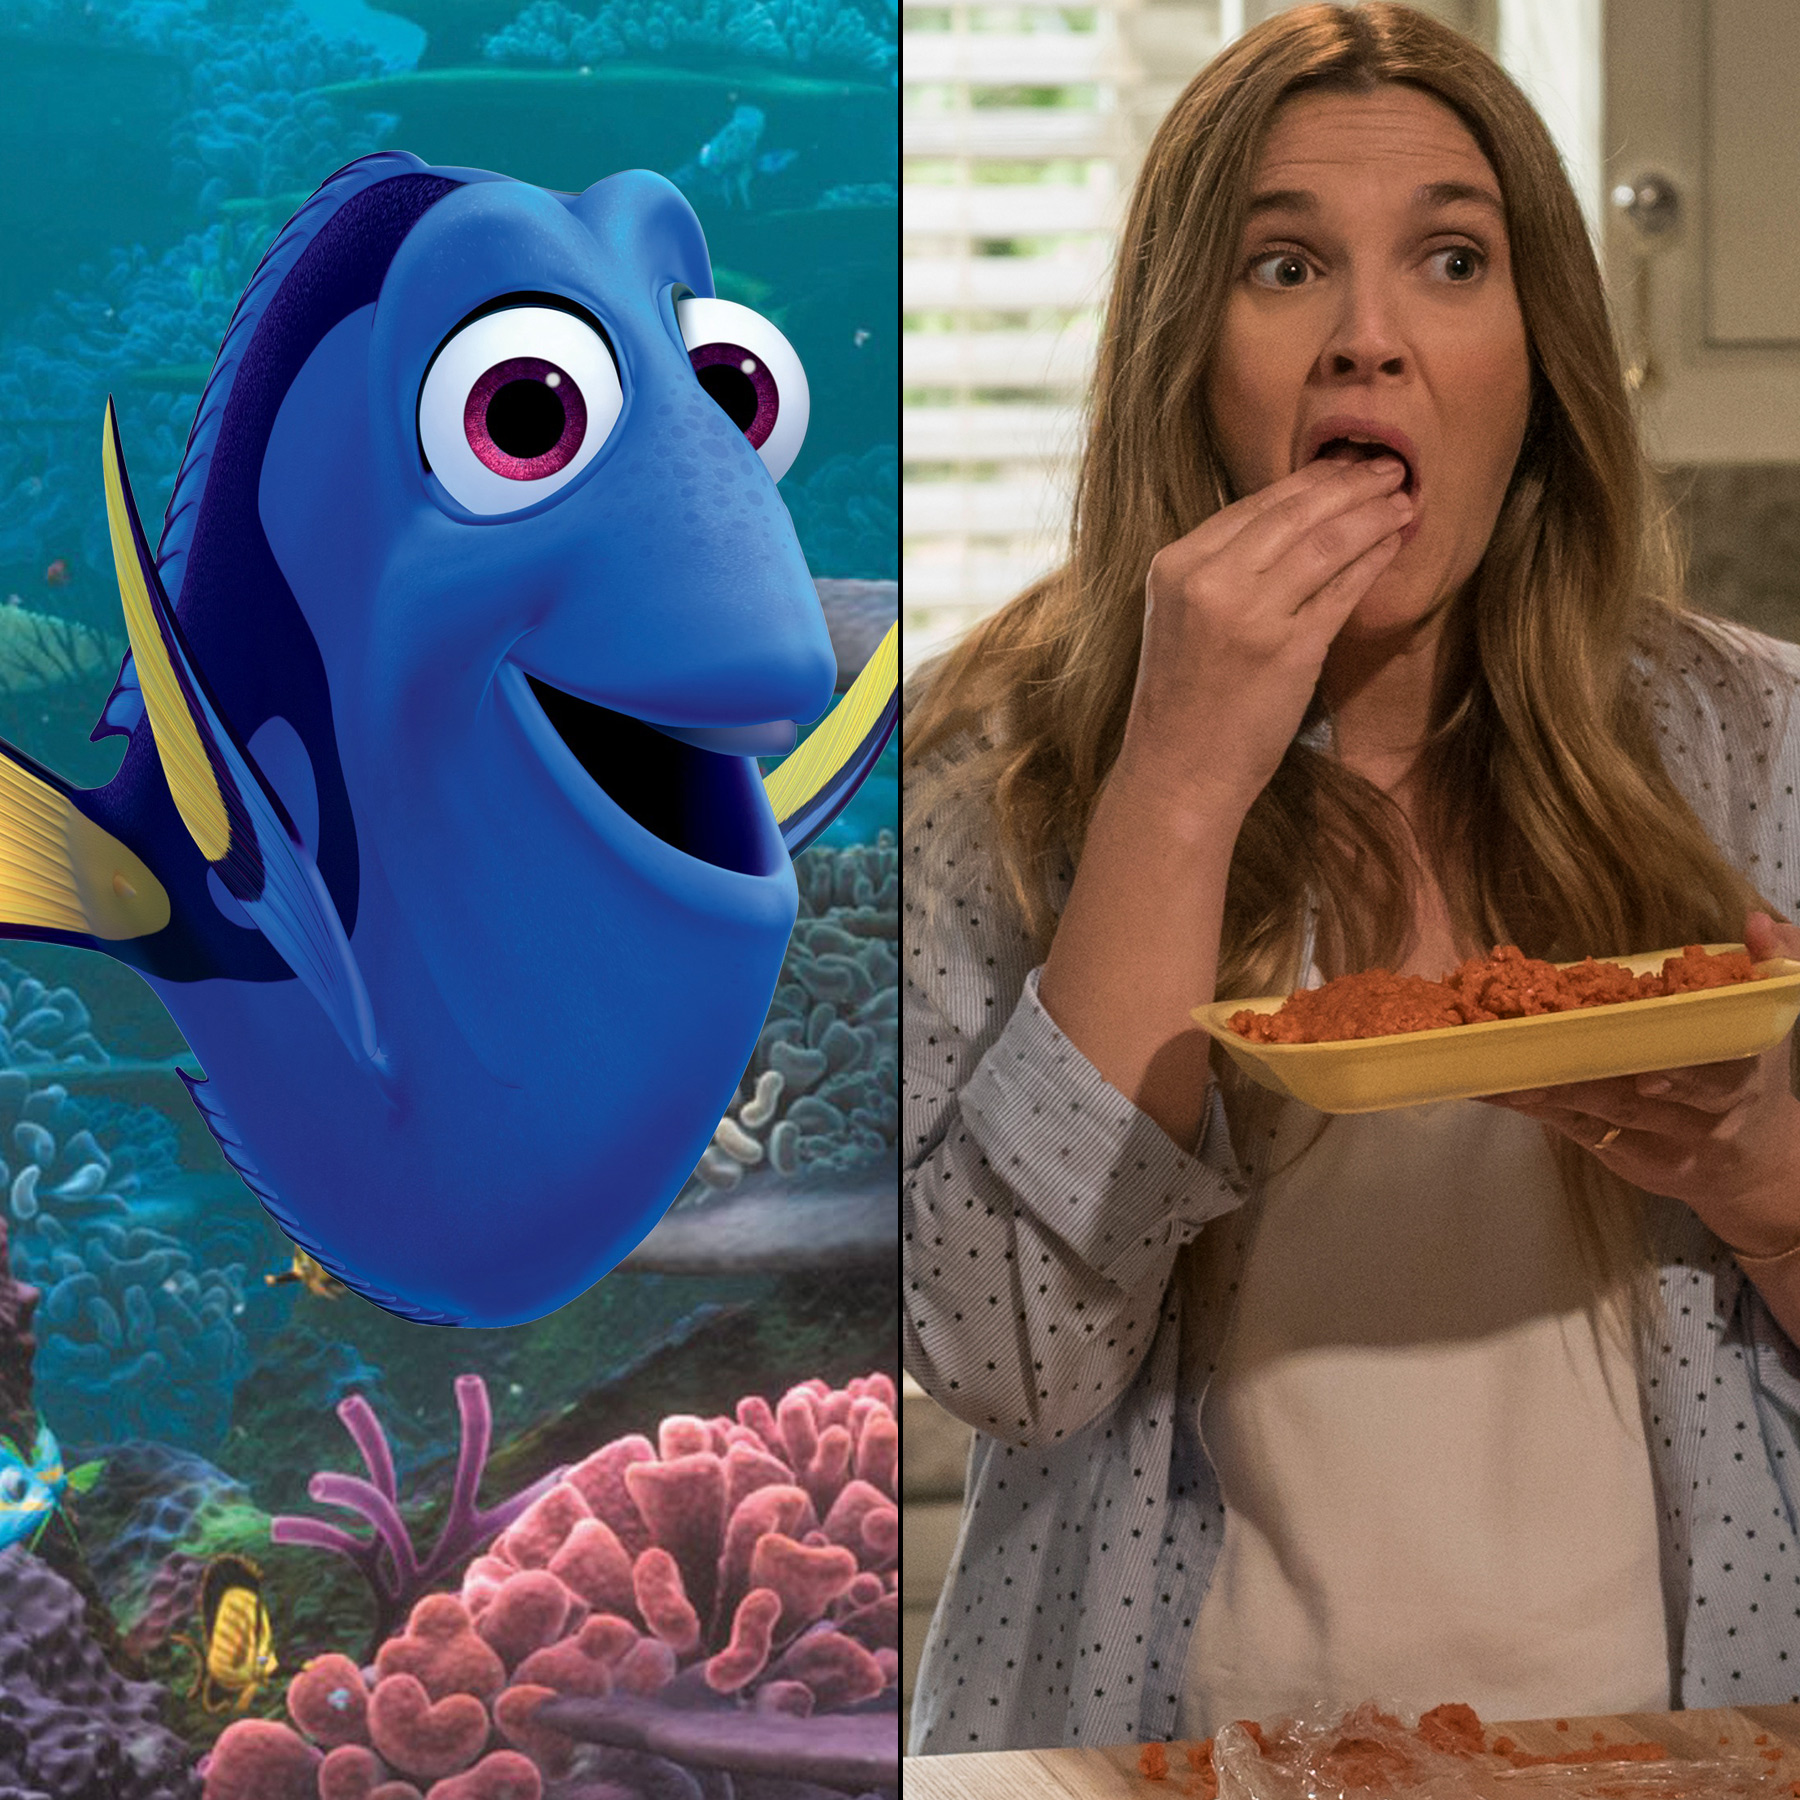 What's new on Netflix in February: 'Finding Dory' and 'Santa Clarita Diet'